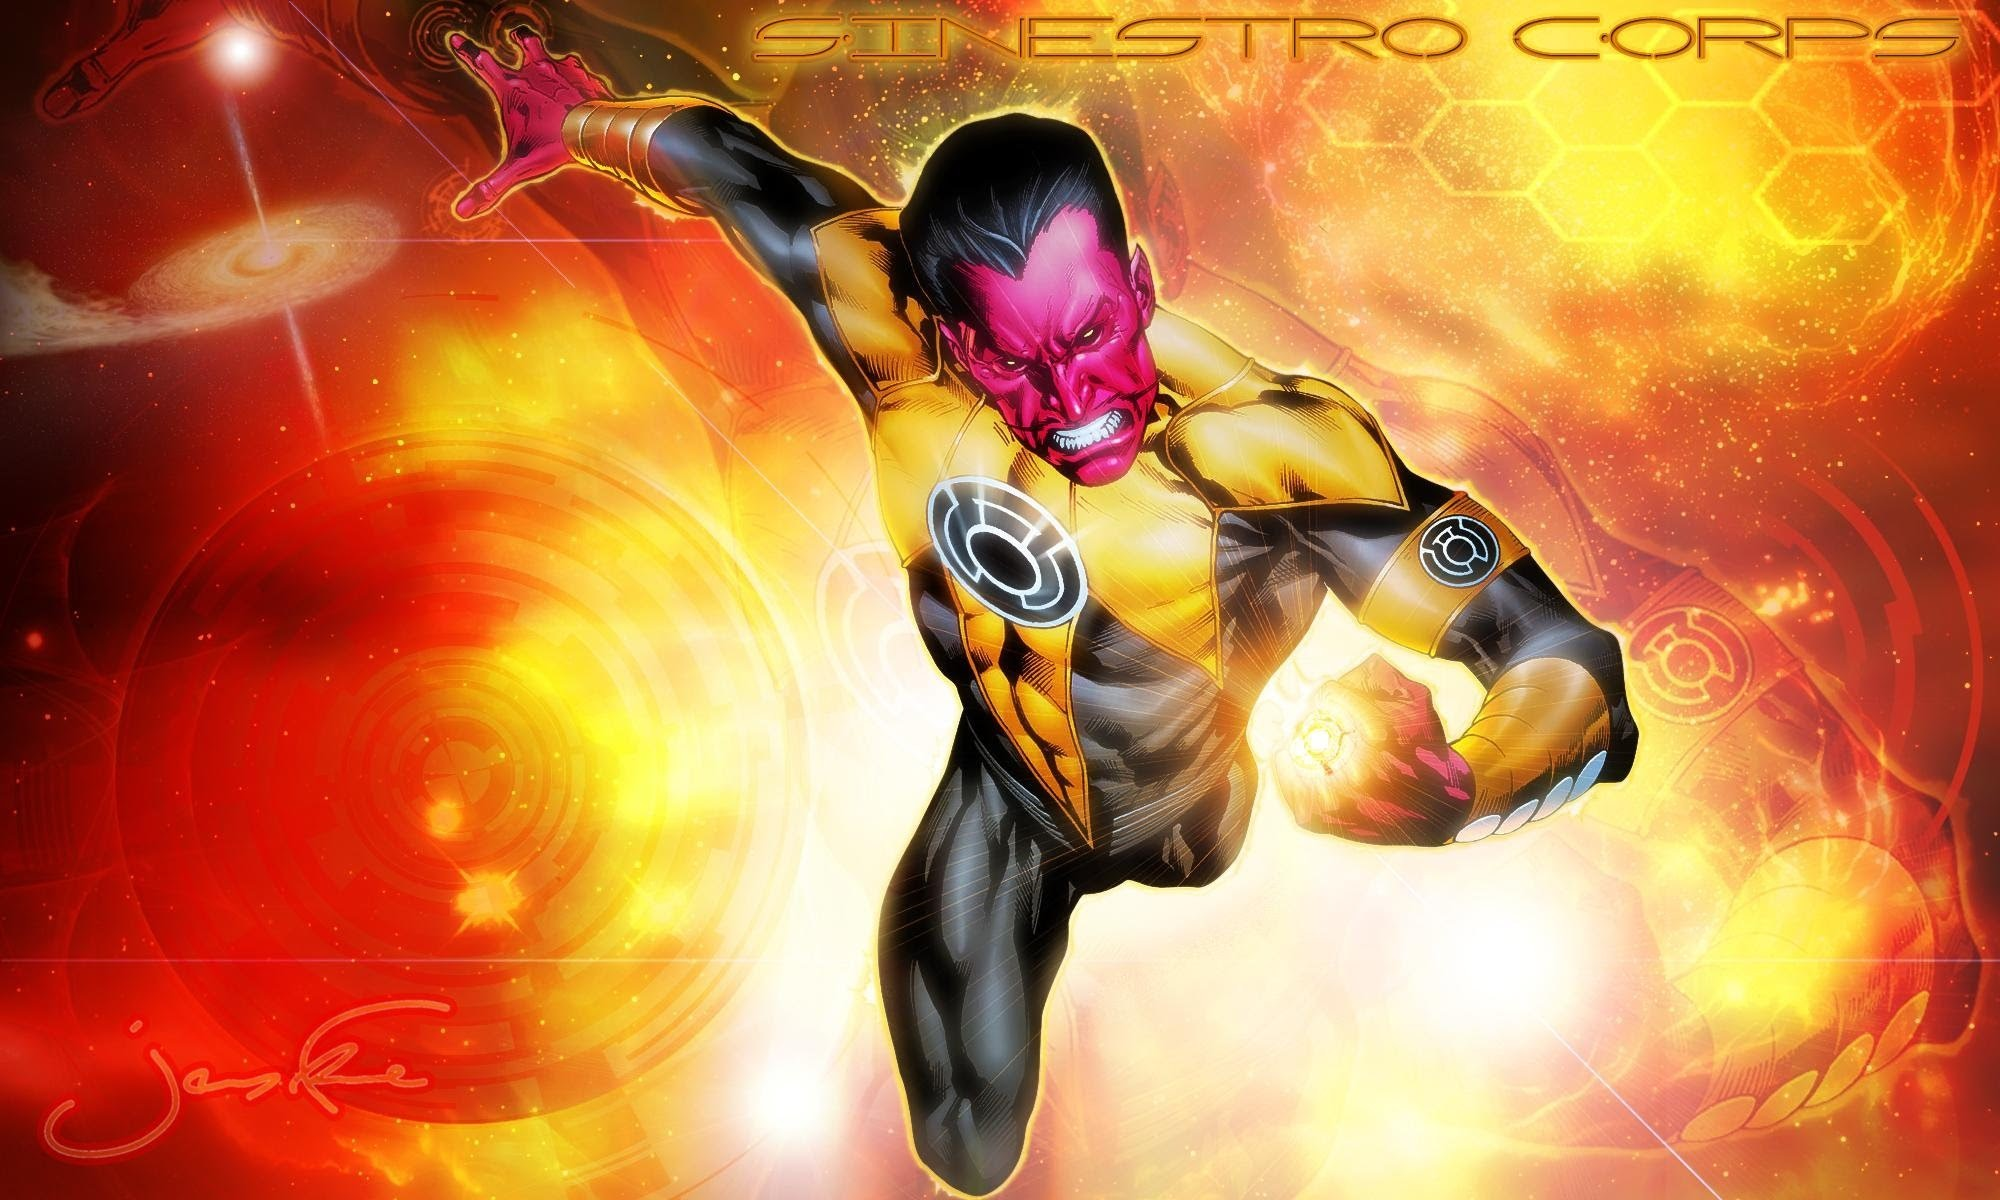 Res: 2000x1200, The Ballad of Thaal Sinestro The Fallen and New Warrior